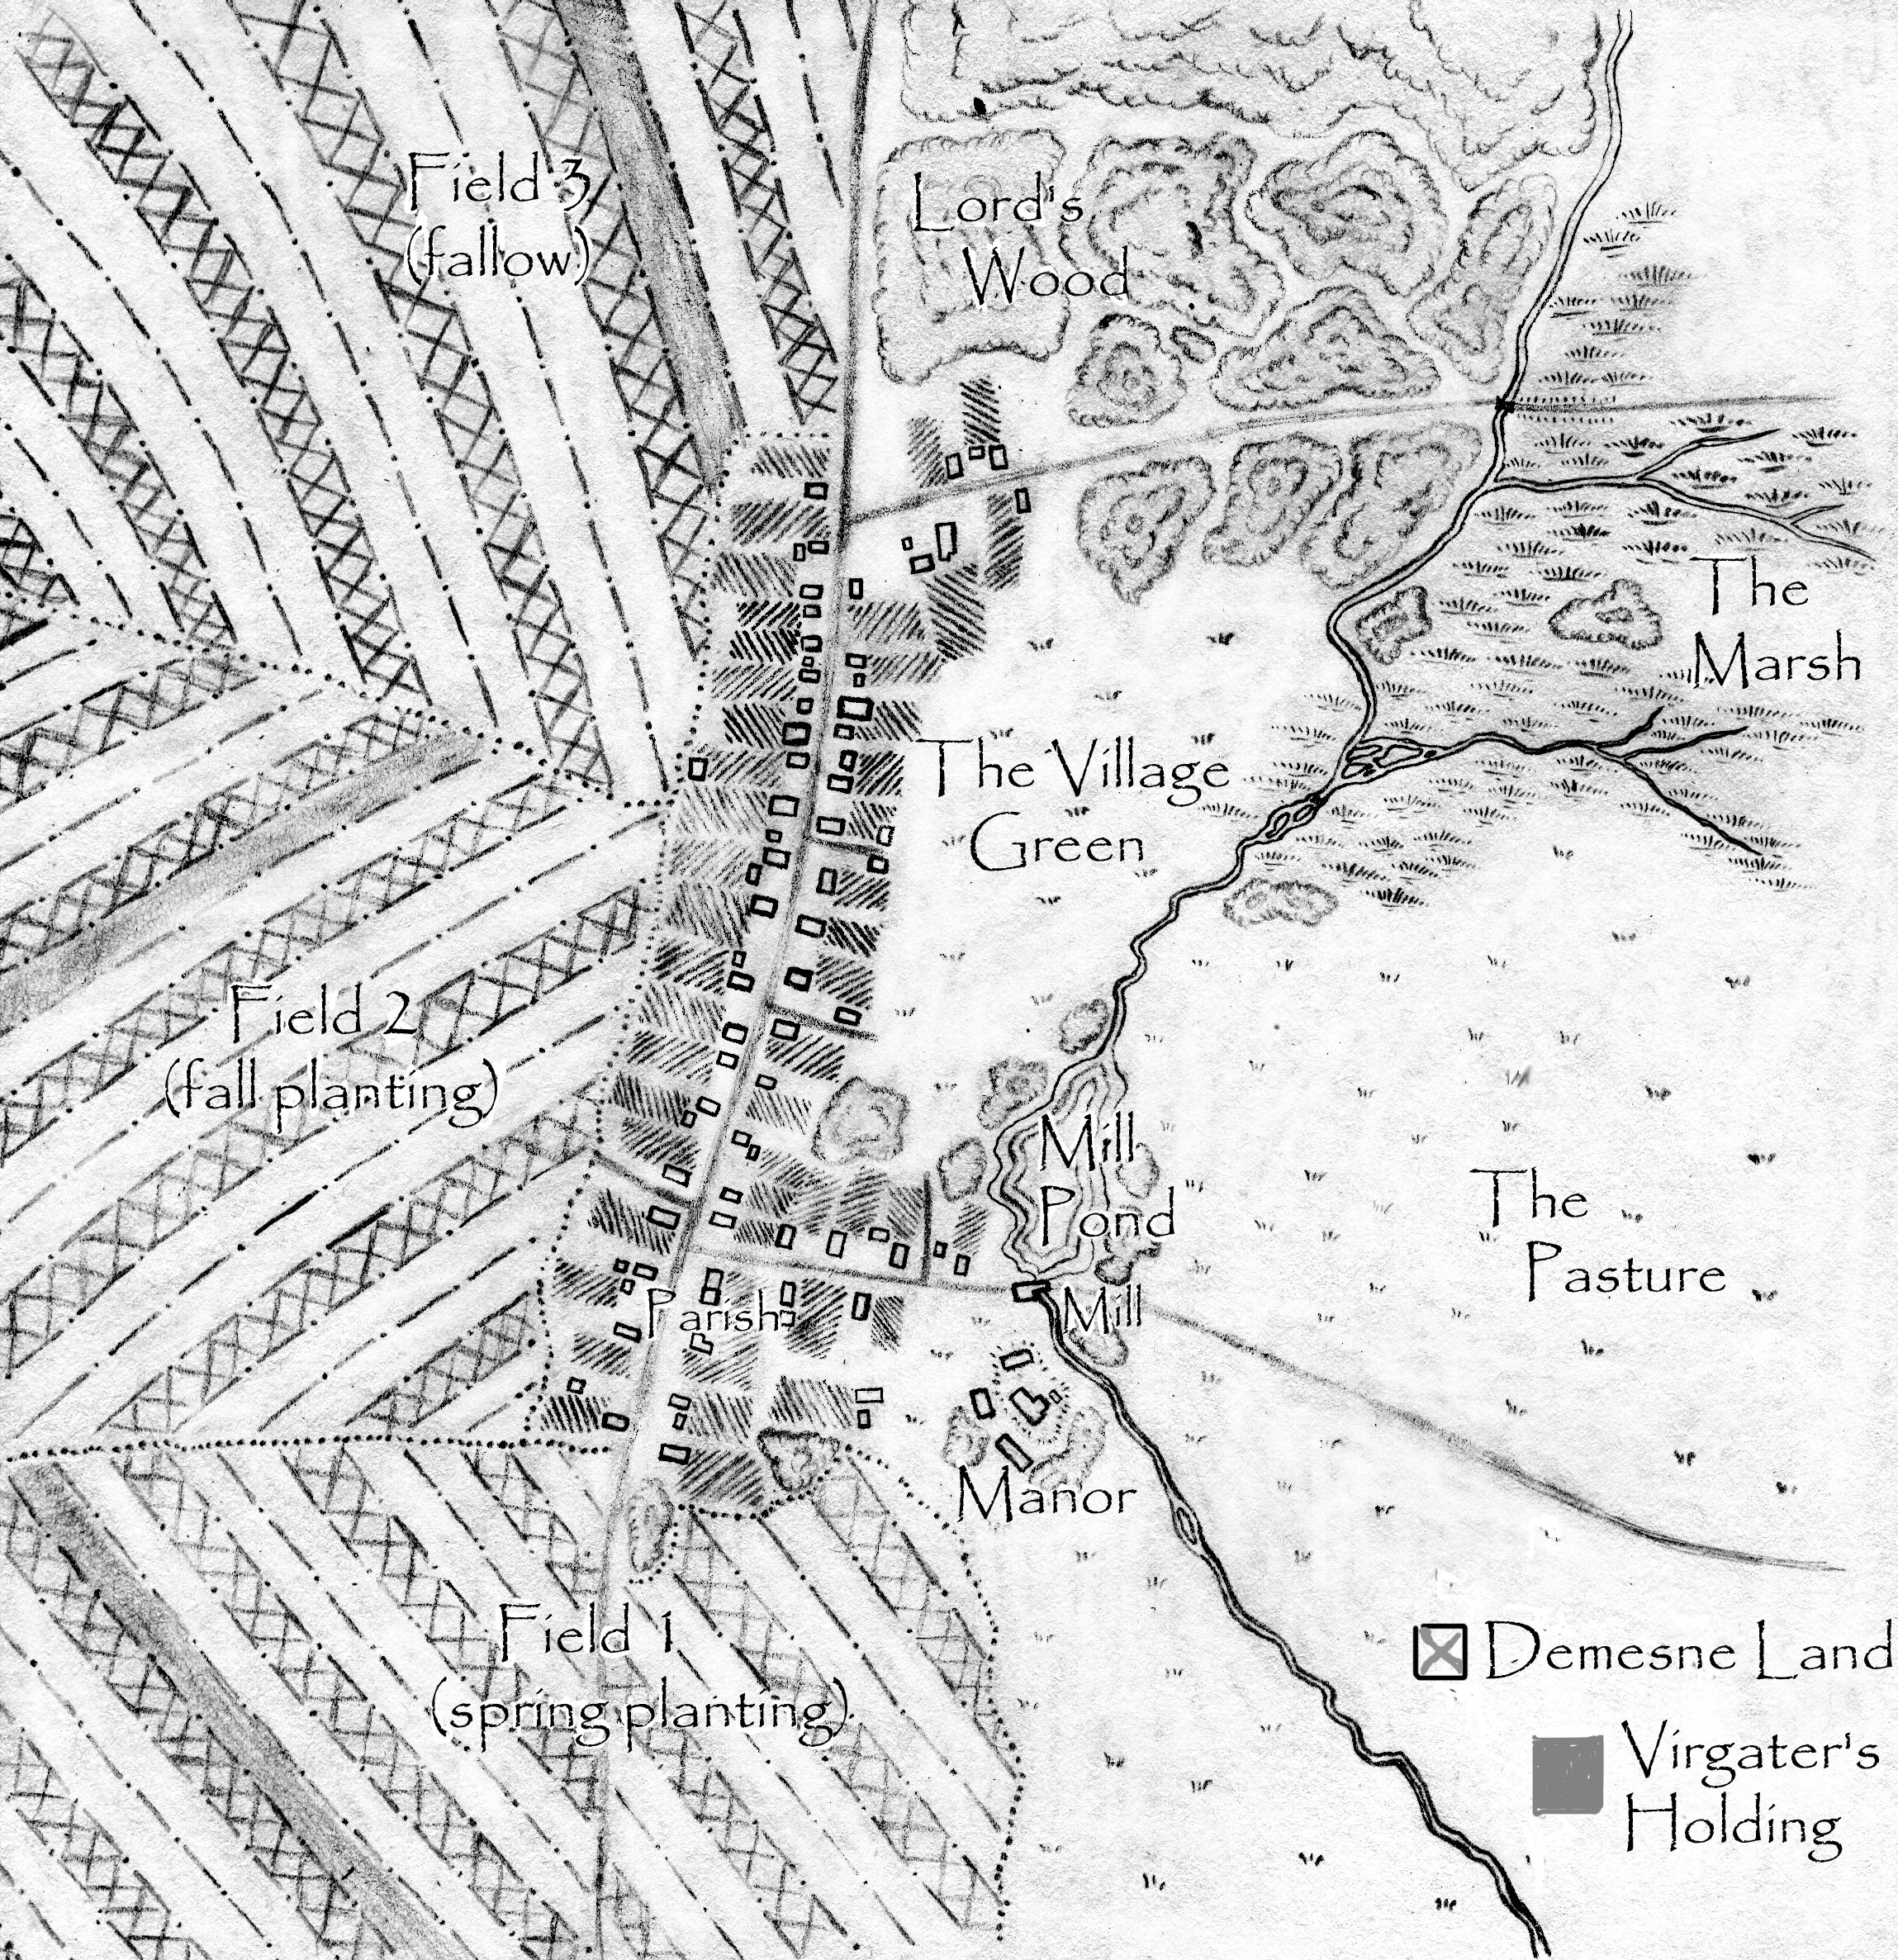 Get Medieval: The Village in the Middle Ages | Ludus Ludorum